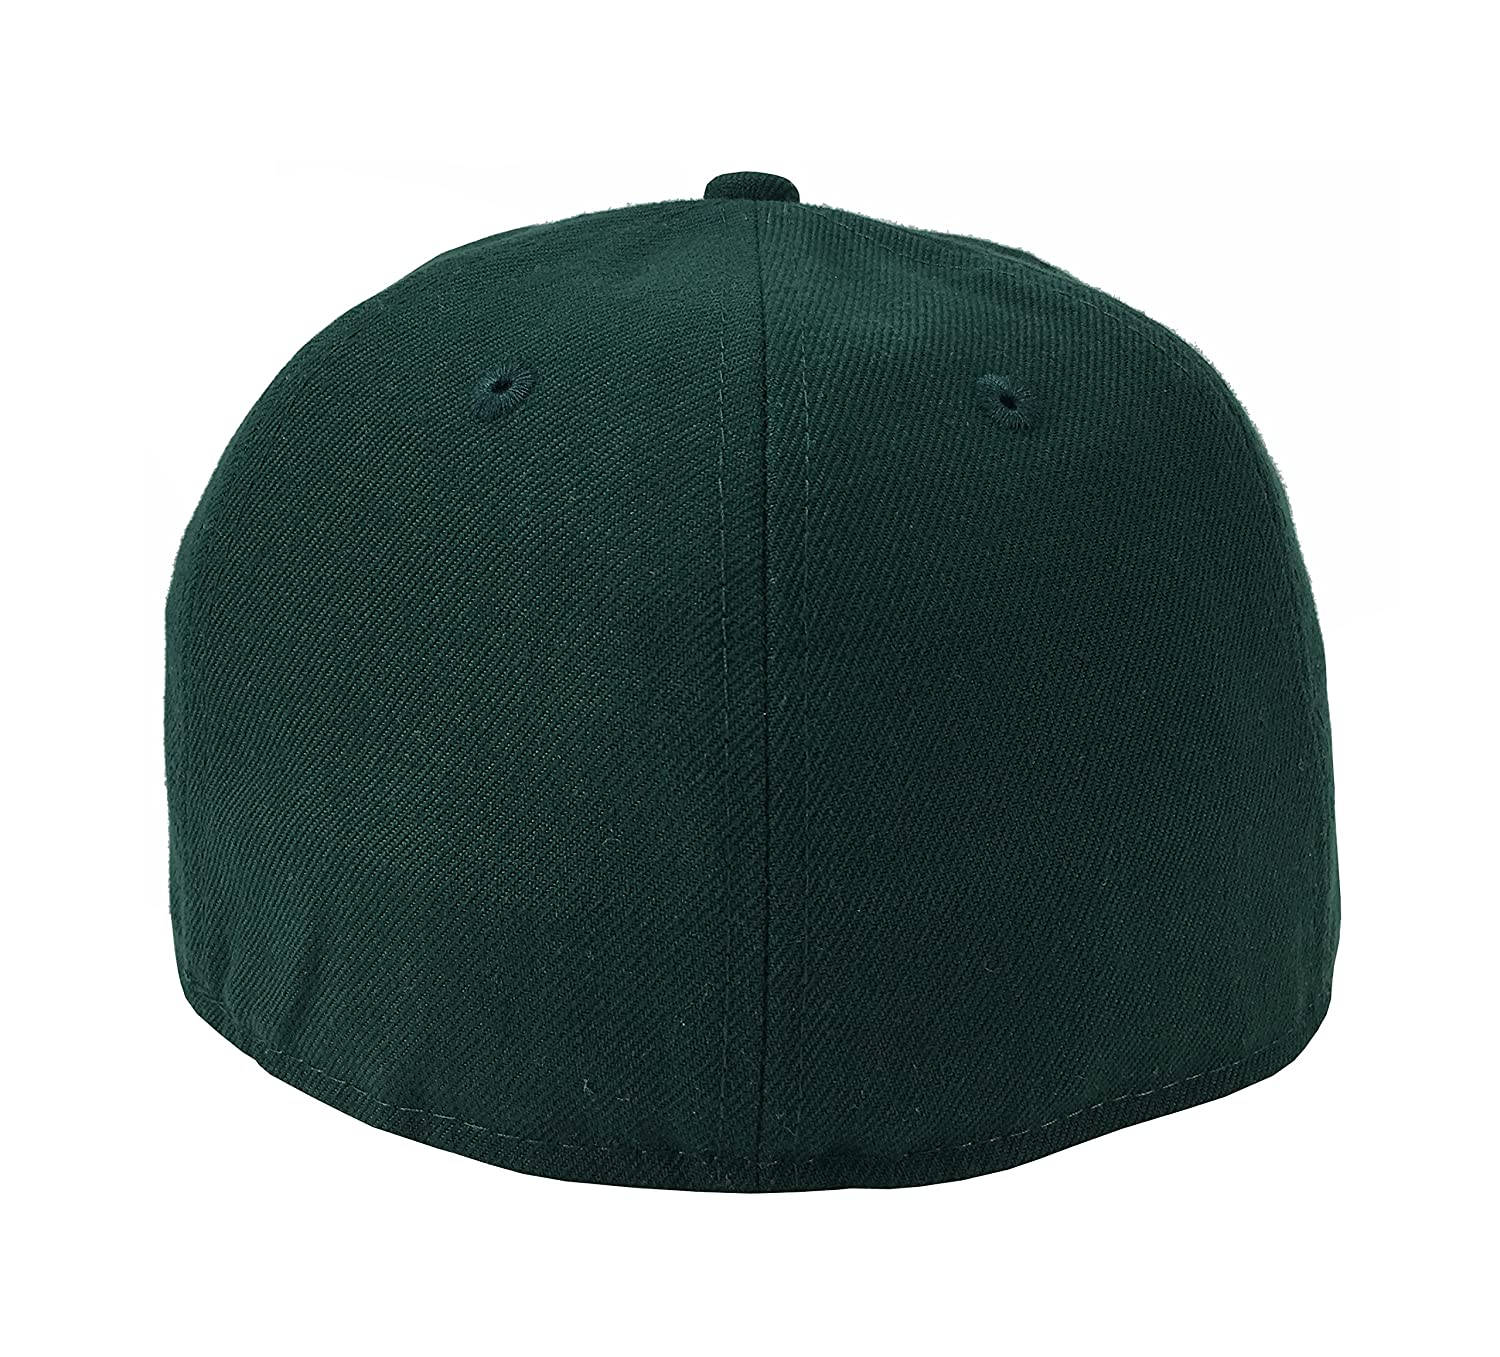 New Era 59Fifty Hat Santos Laguna Soccer Club Mexican League Green Fitted Cap at Amazon Mens Clothing store: